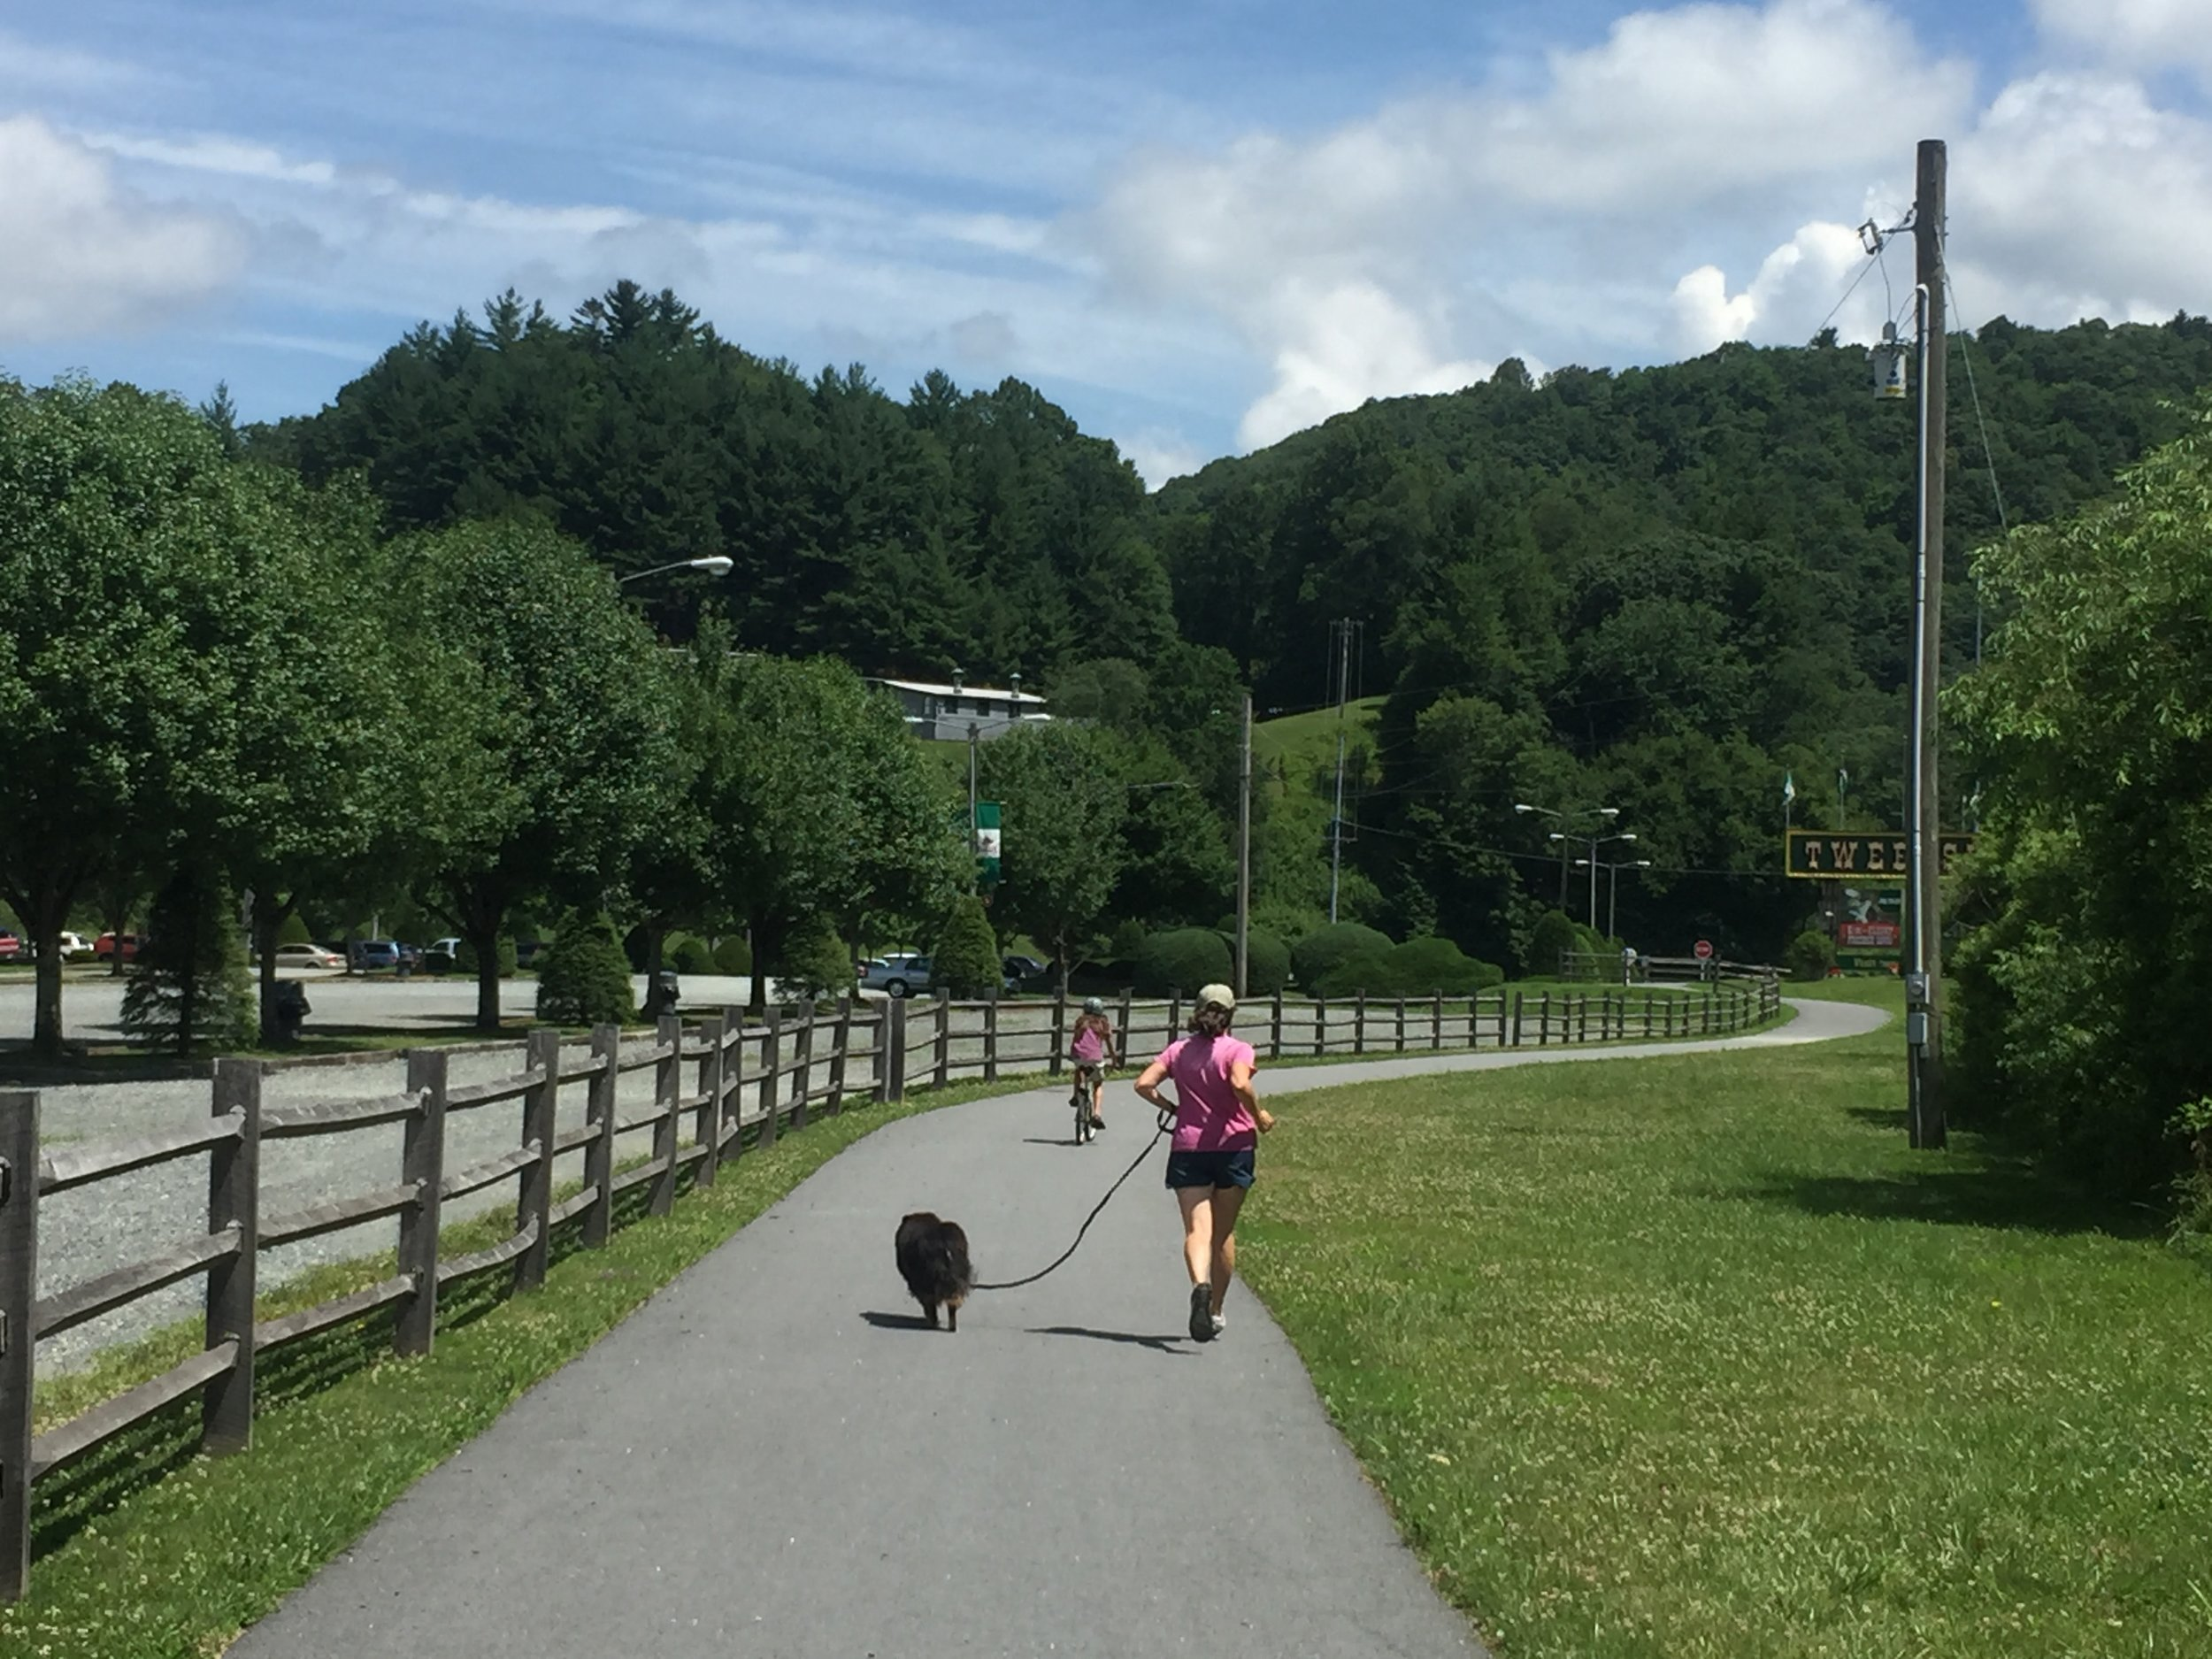 Joggers and cyclists using the Middle Fork Greenway in front of Tweetsie Railroad.